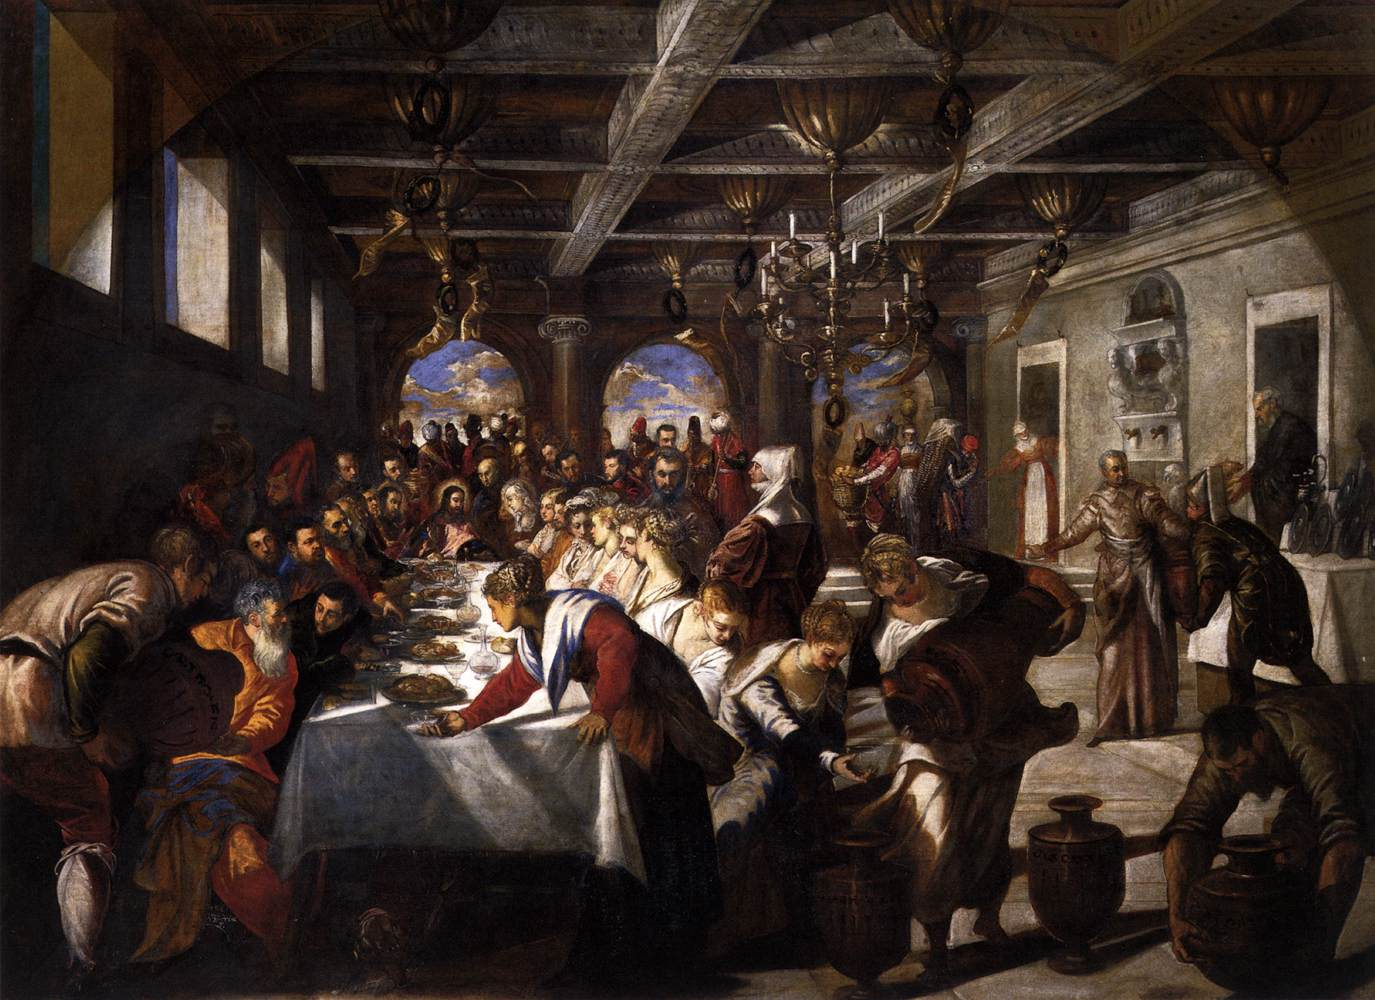 """""""Jacopo Tintoretto - Marriage at Cana - WGA22470"""" by Tintoretto - Web Gallery of Art:  Image Info about artwork. Licensed under Public Domain via Commons"""